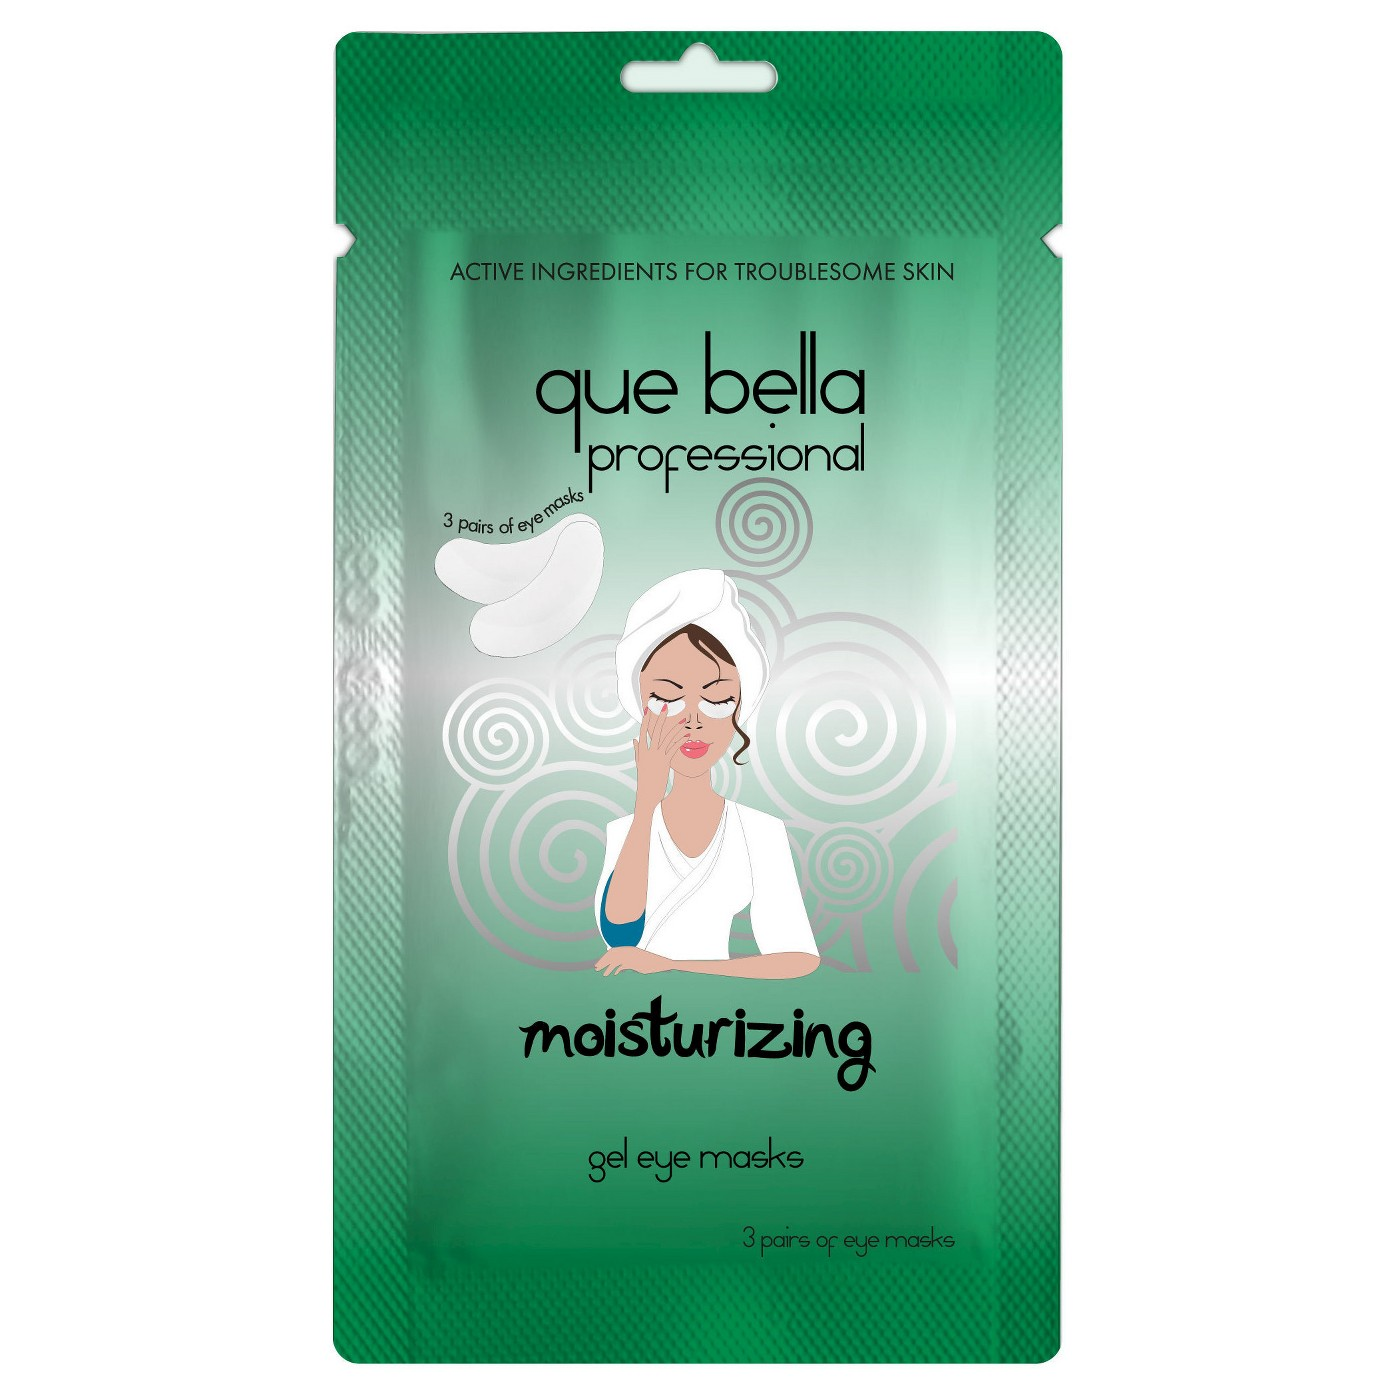 Que Bella Professional Moisturizing Gel Eye Masks - 3 pairs - image 1 of 3